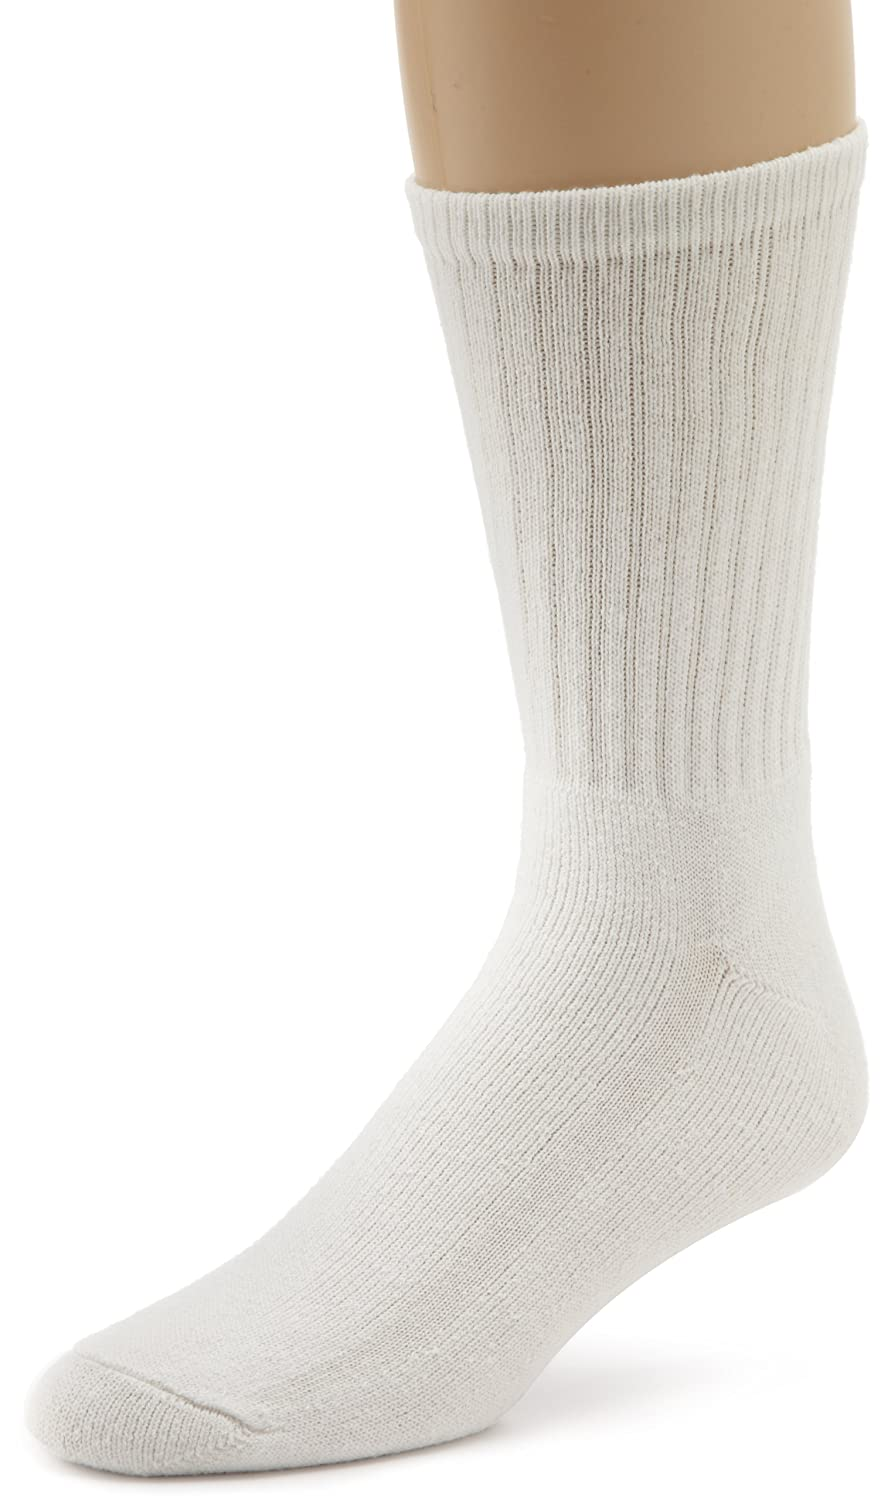 Discover the best Men's Socks in Best Sellers. Find the top most popular items in Amazon Best Sellers.